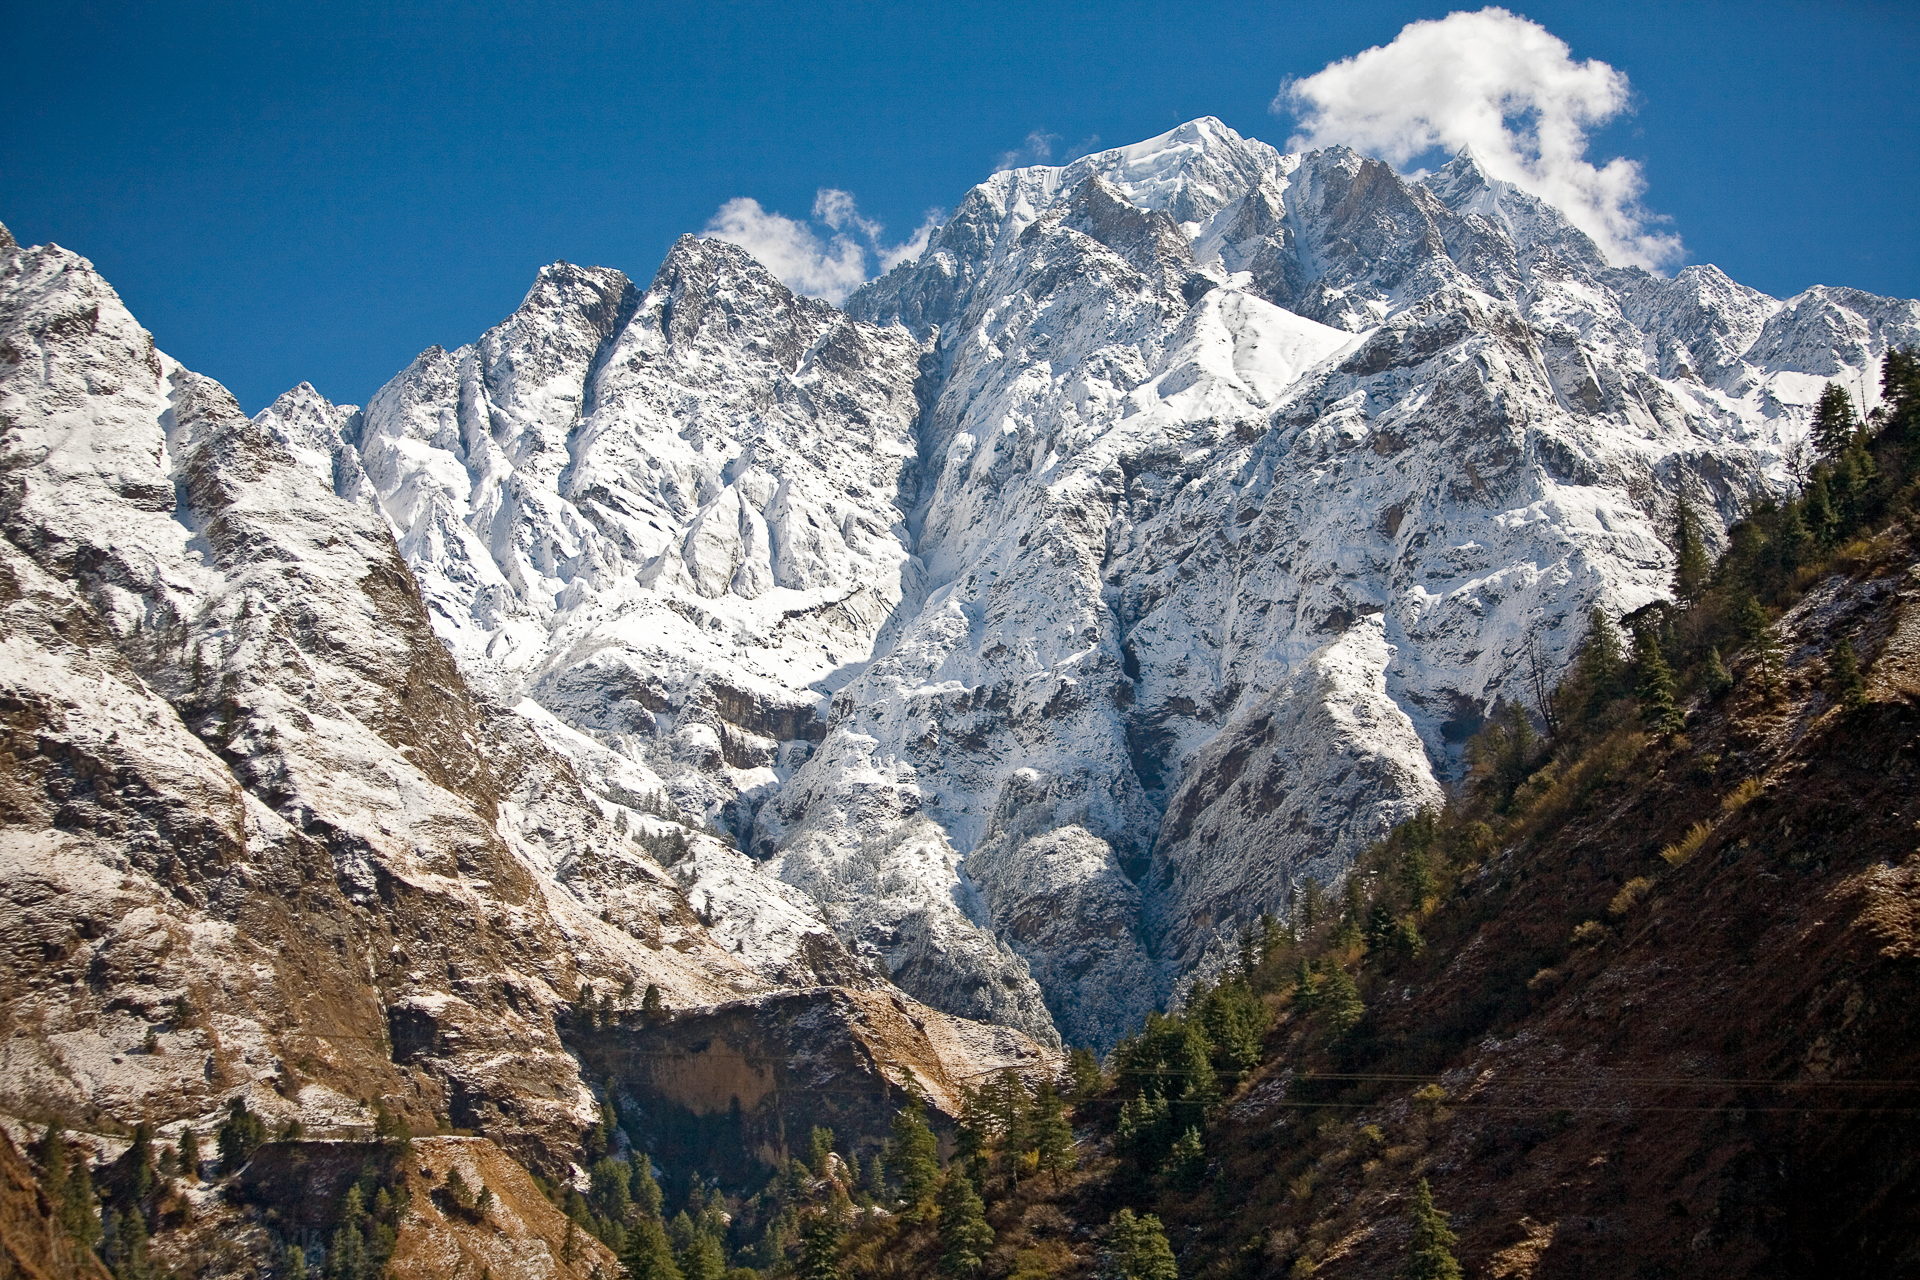 Standing in the Kali Gandaki Gorge, you can look straight up to Annapurna I, 18,278 feet above you.